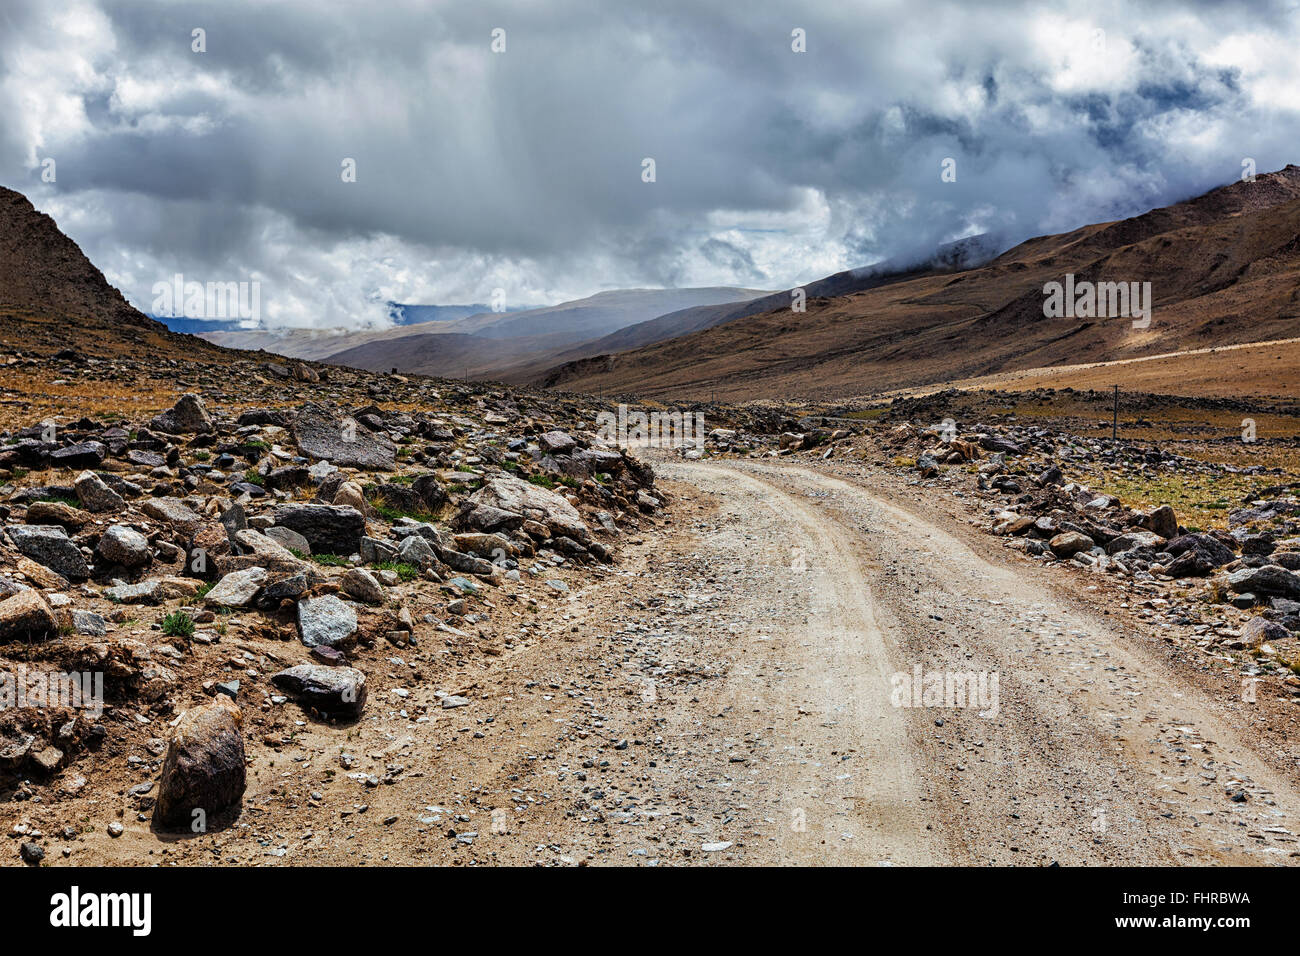 Dirt road in Himalayas - Stock Image